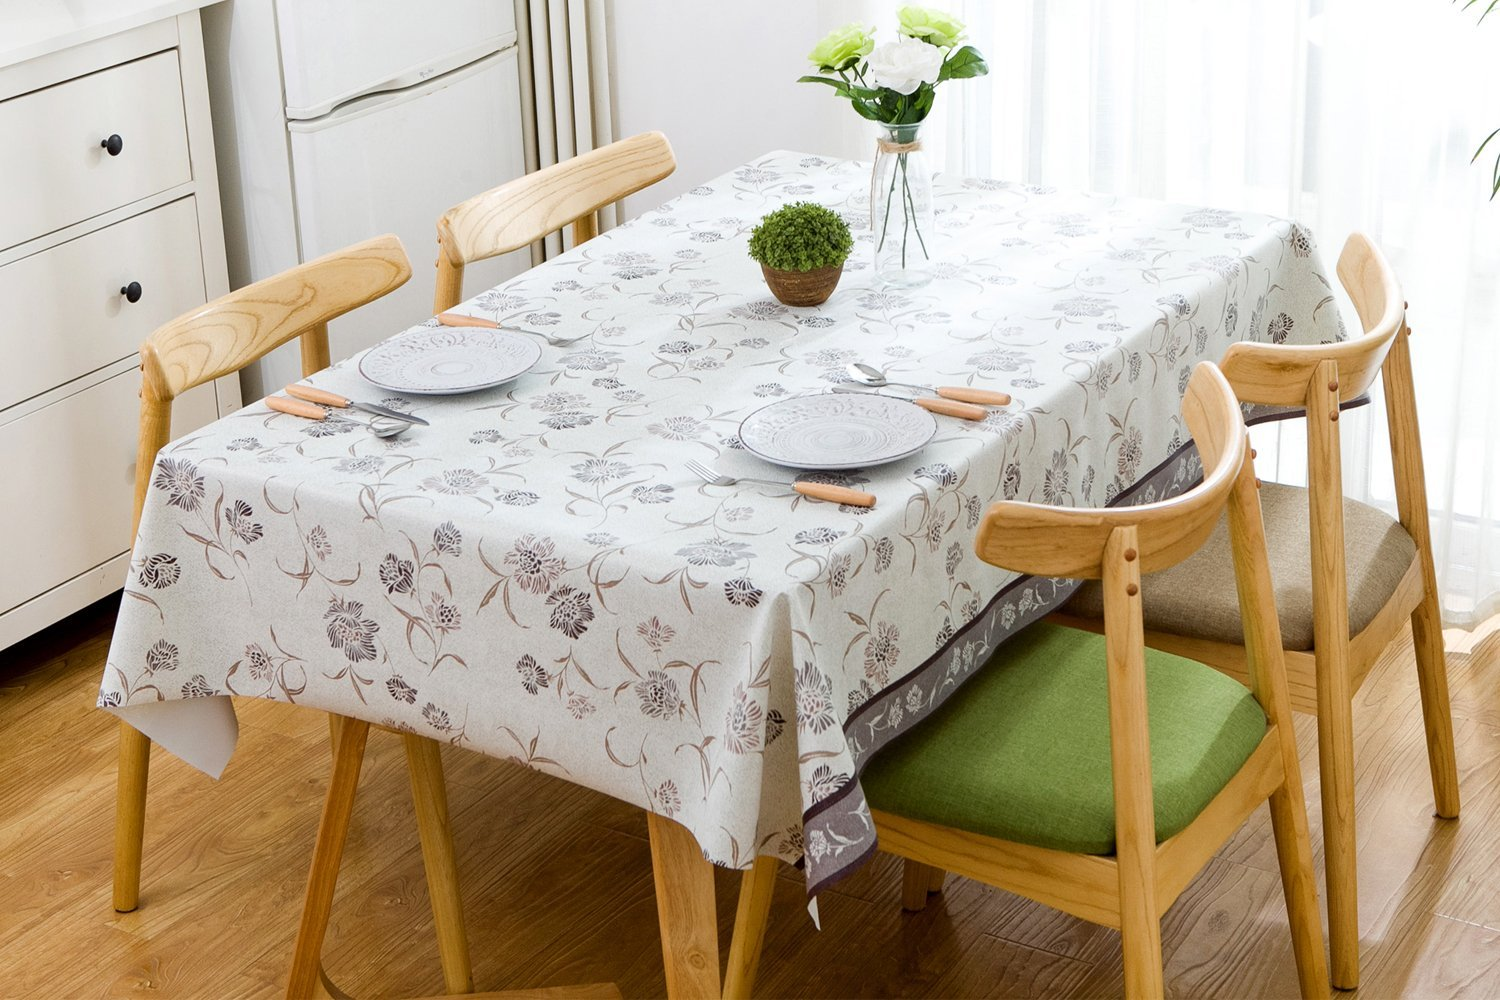 4Ft Bird Silver Grey Square Tablecloth 54 x 54 Inch LOHASCASA Vinyl Oilcloth Tablecloth Spillproof Wipeable PVC Waterproof Plastic Party Oil Tablecloths for Small Coffee Table